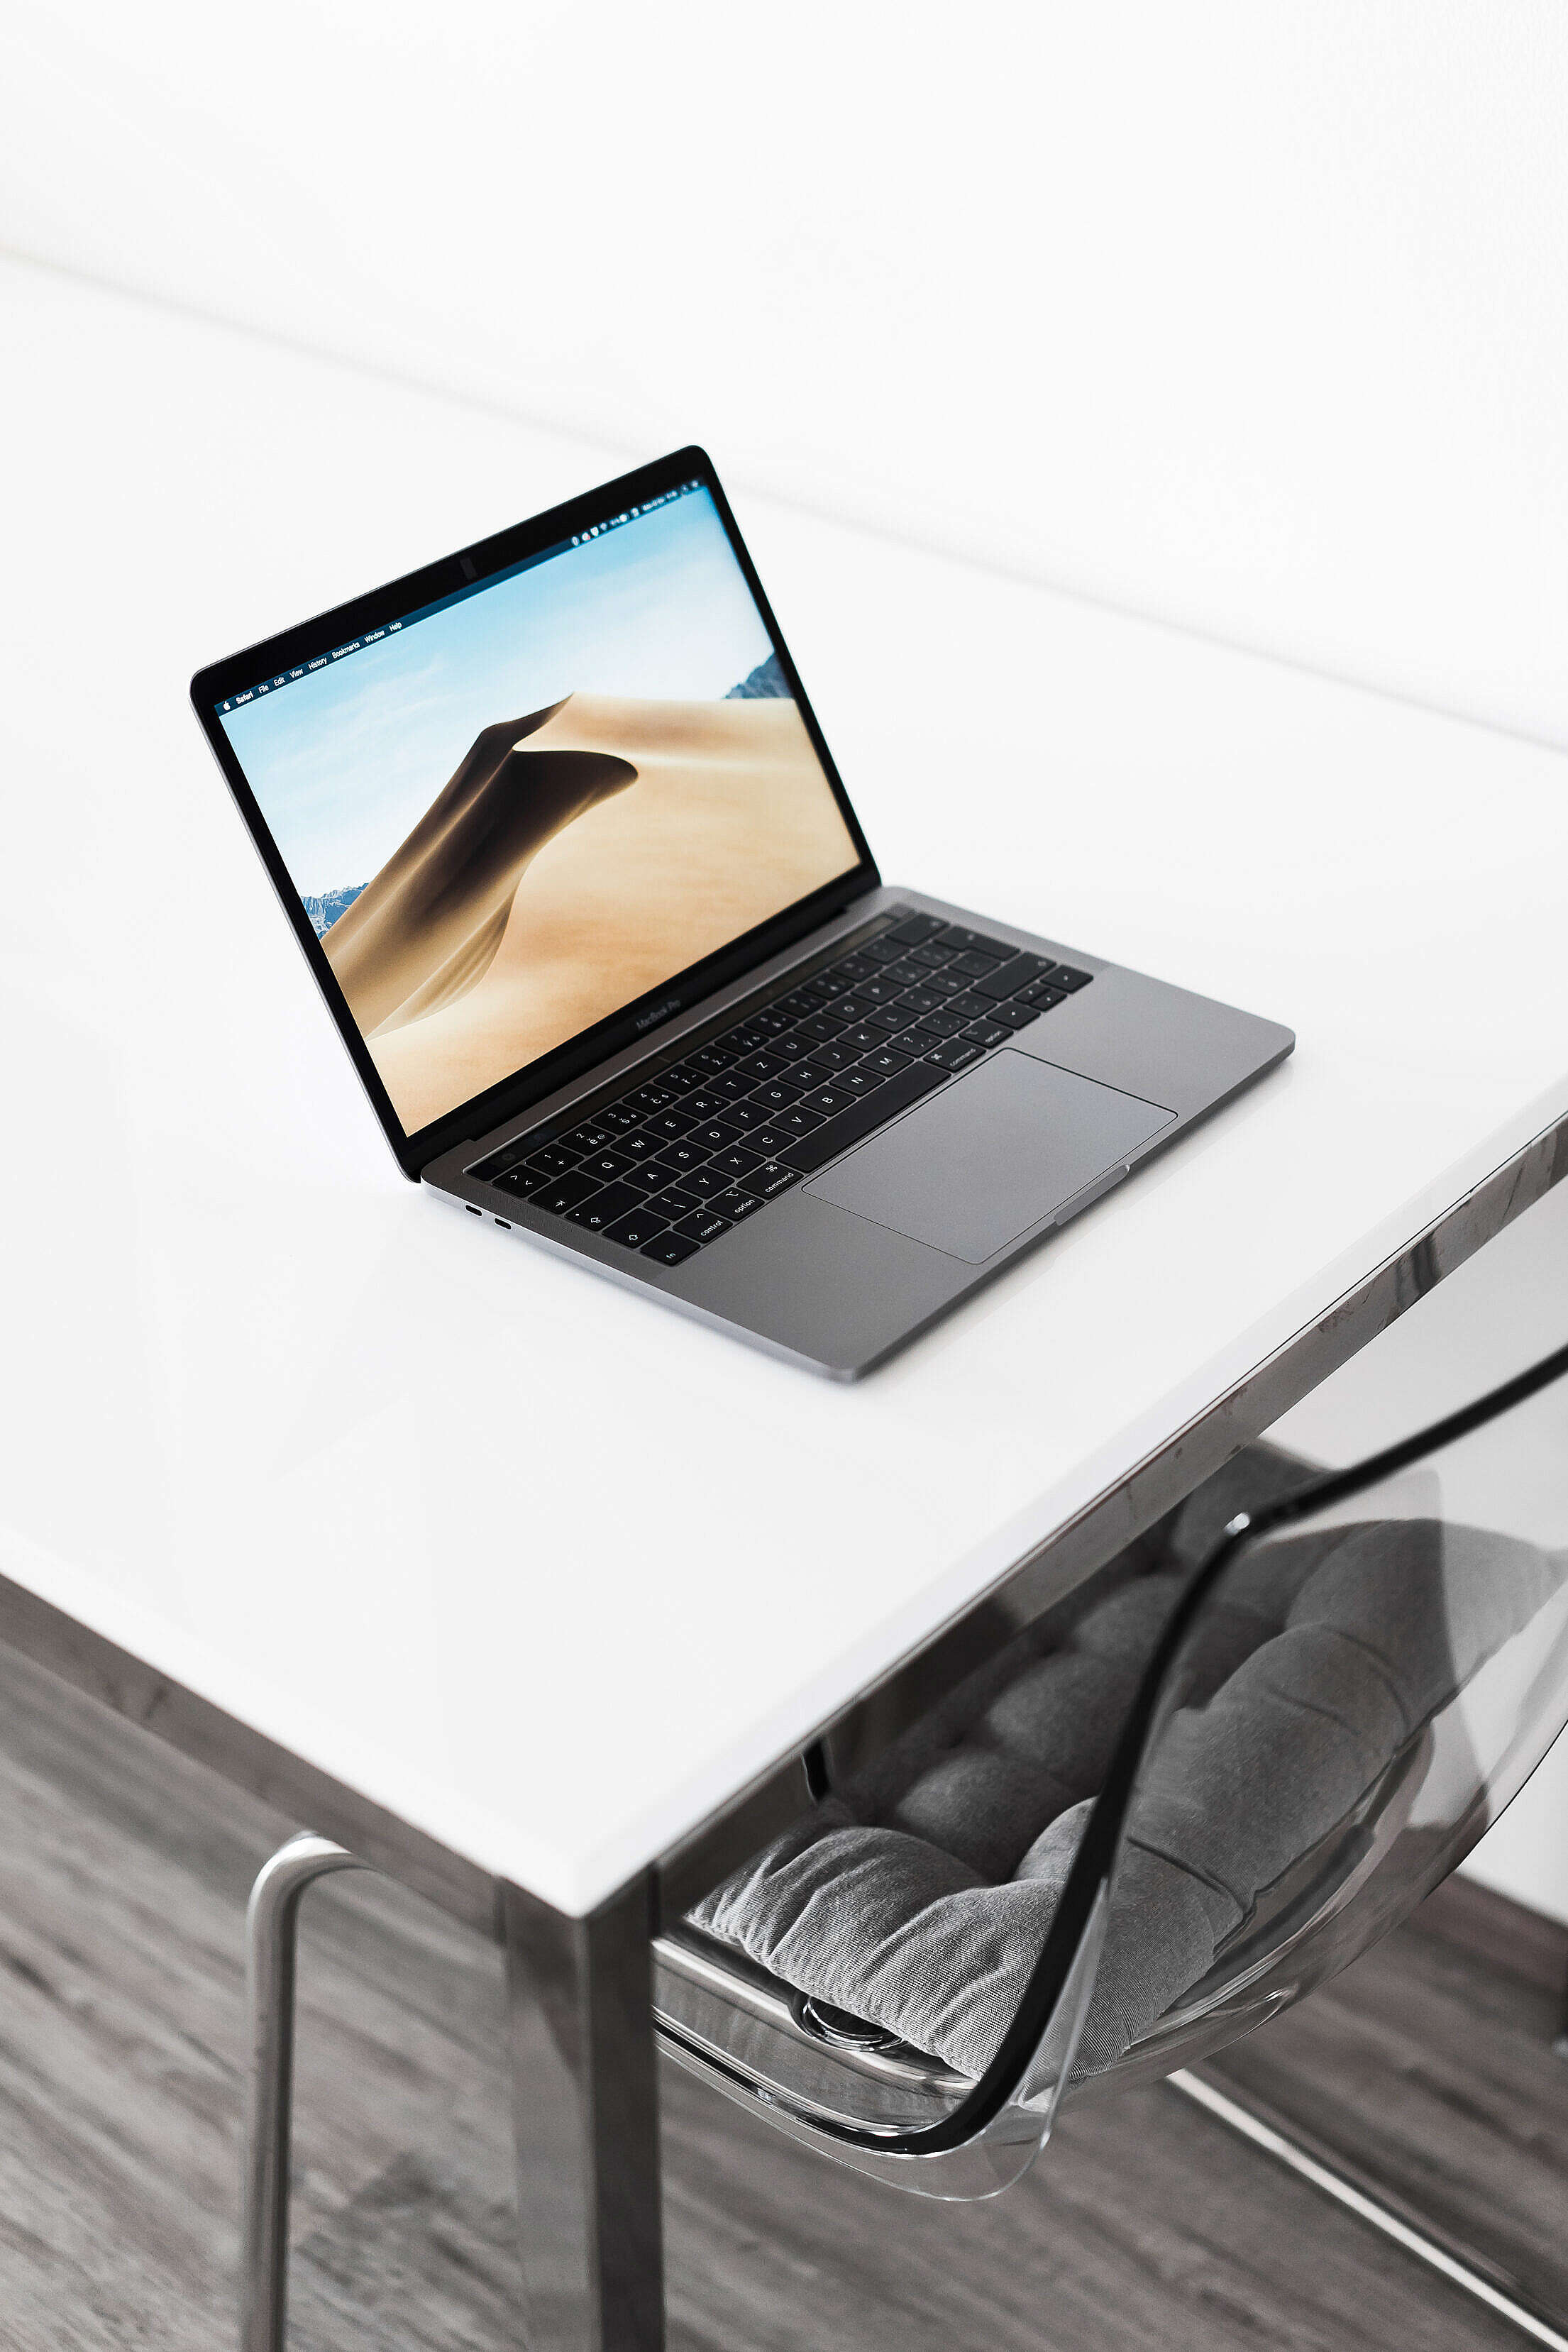 MacBook Pro on White Table at Home Free Stock Photo